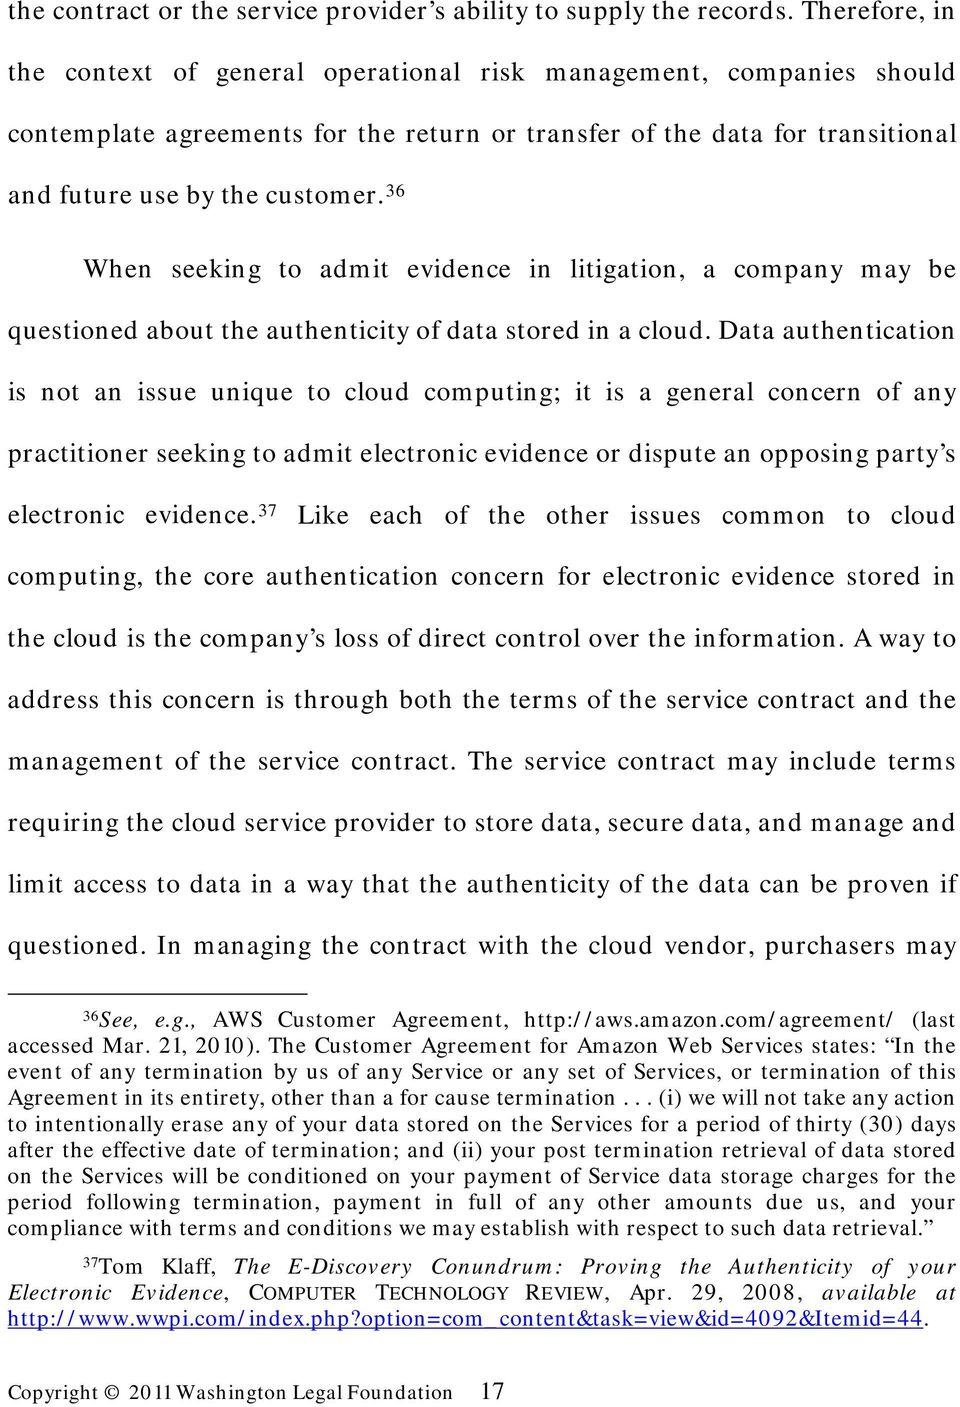 36 When seeking to admit evidence in litigation, a company may be questioned about the authenticity of data stored in a cloud.